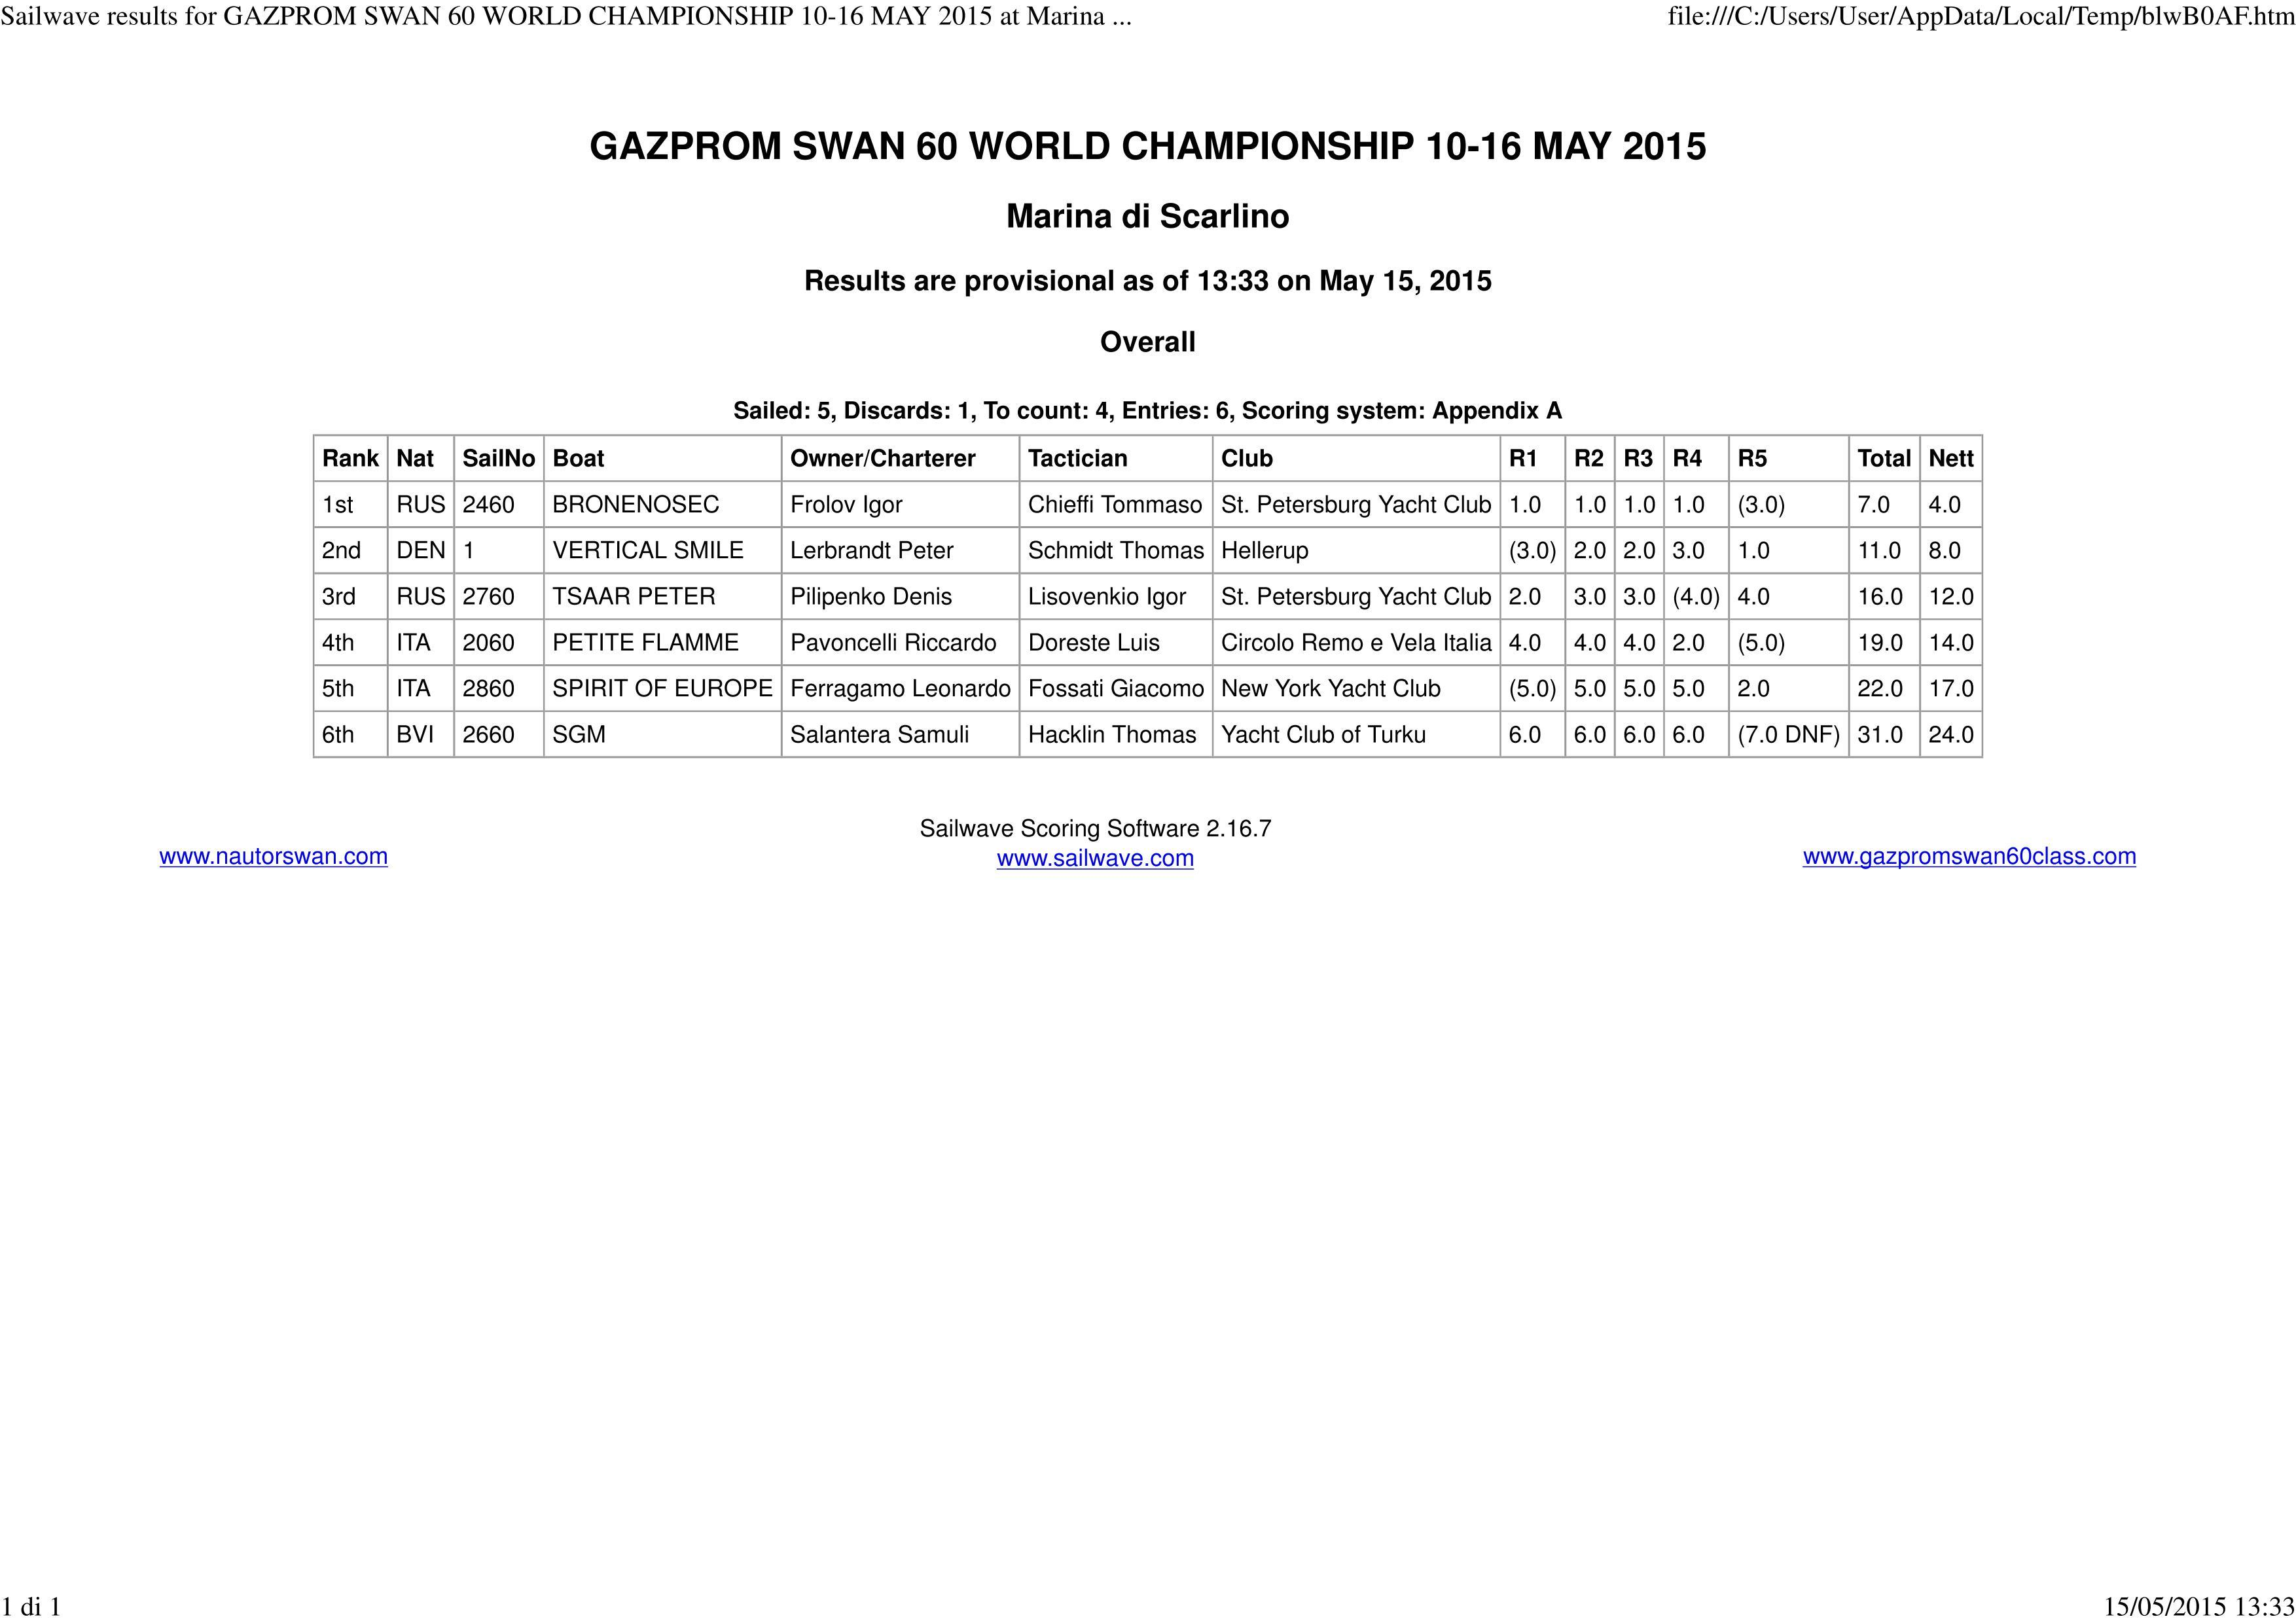 Gazprom Swan 60 World Championship Results after 5 races